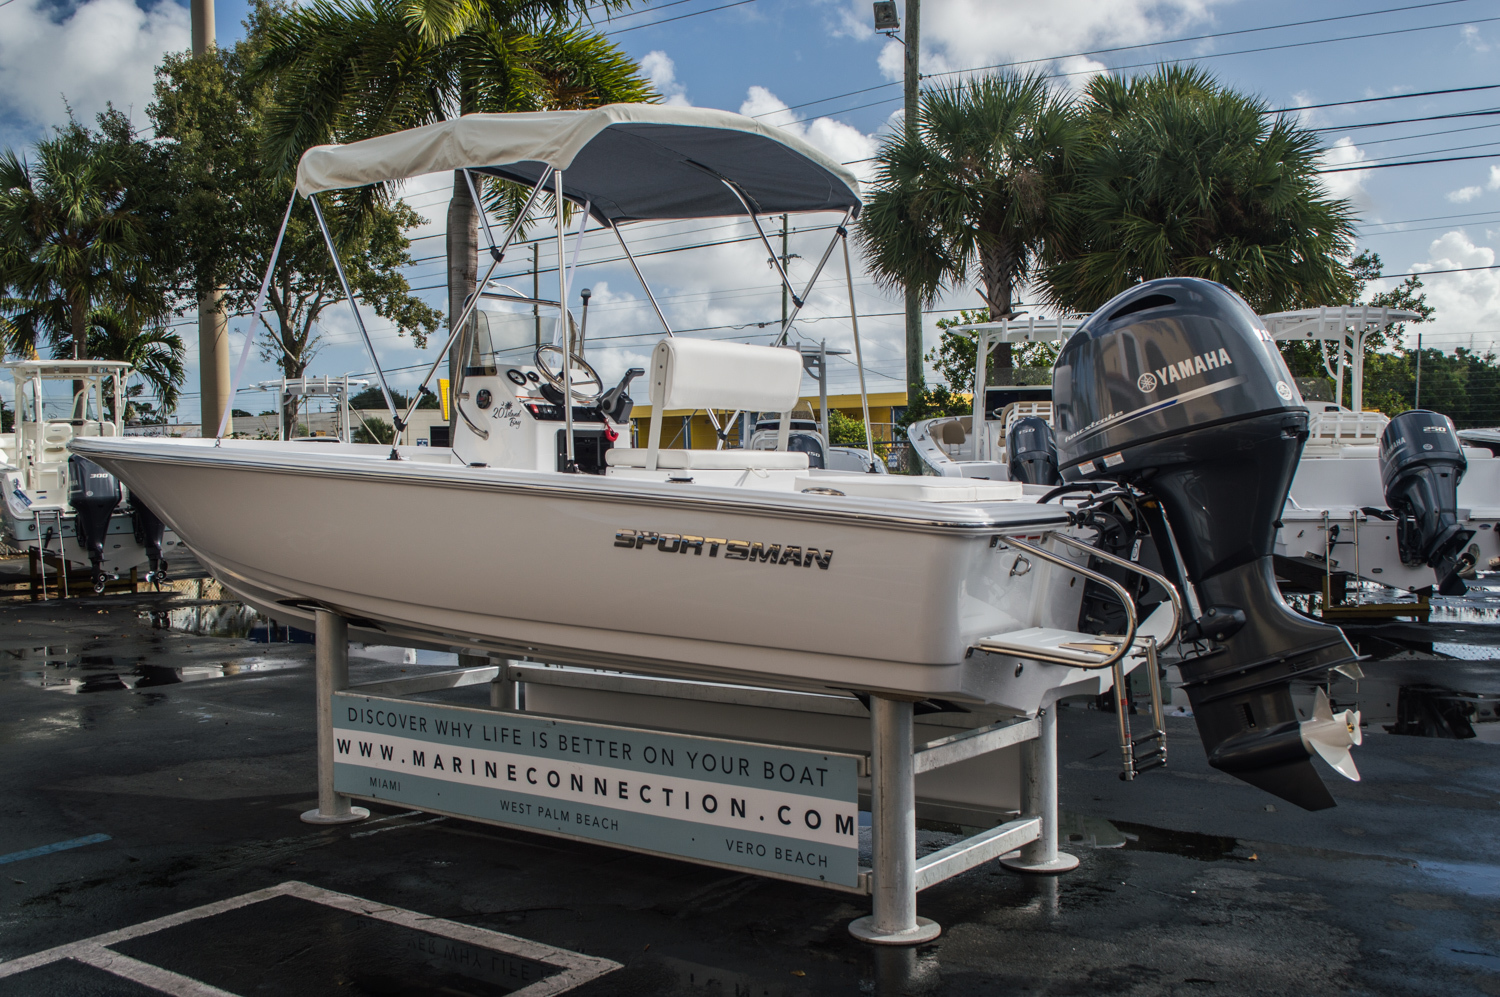 Thumbnail 5 for New 2016 Sportsman 20 Island Bay boat for sale in West Palm Beach, FL